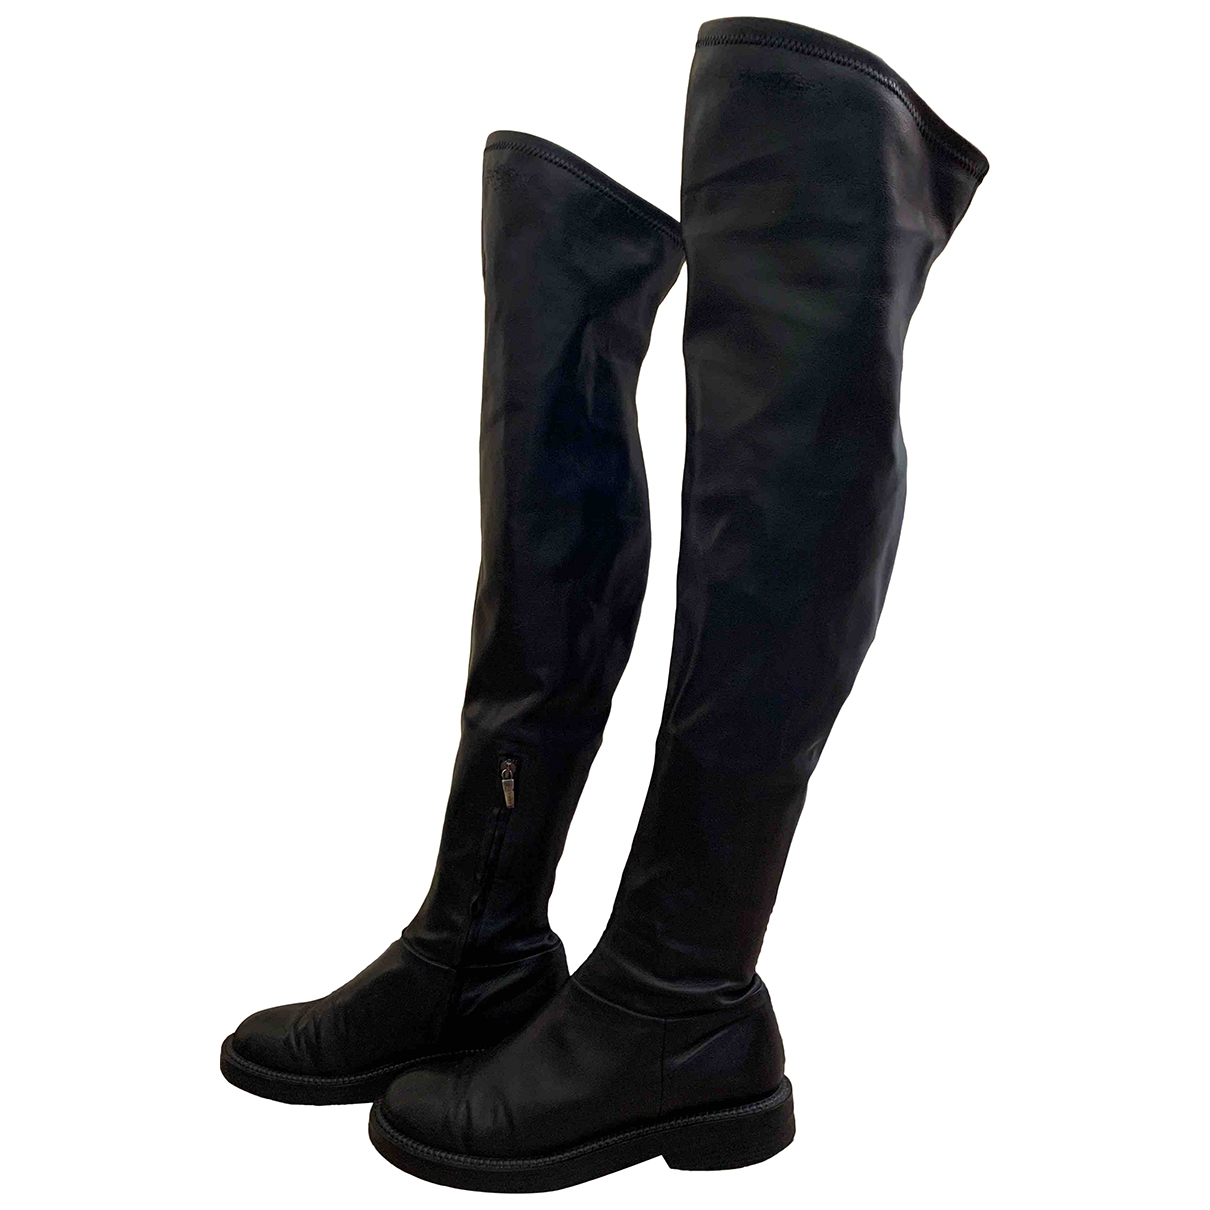 Greymer \N Black Leather Boots for Women 41 EU